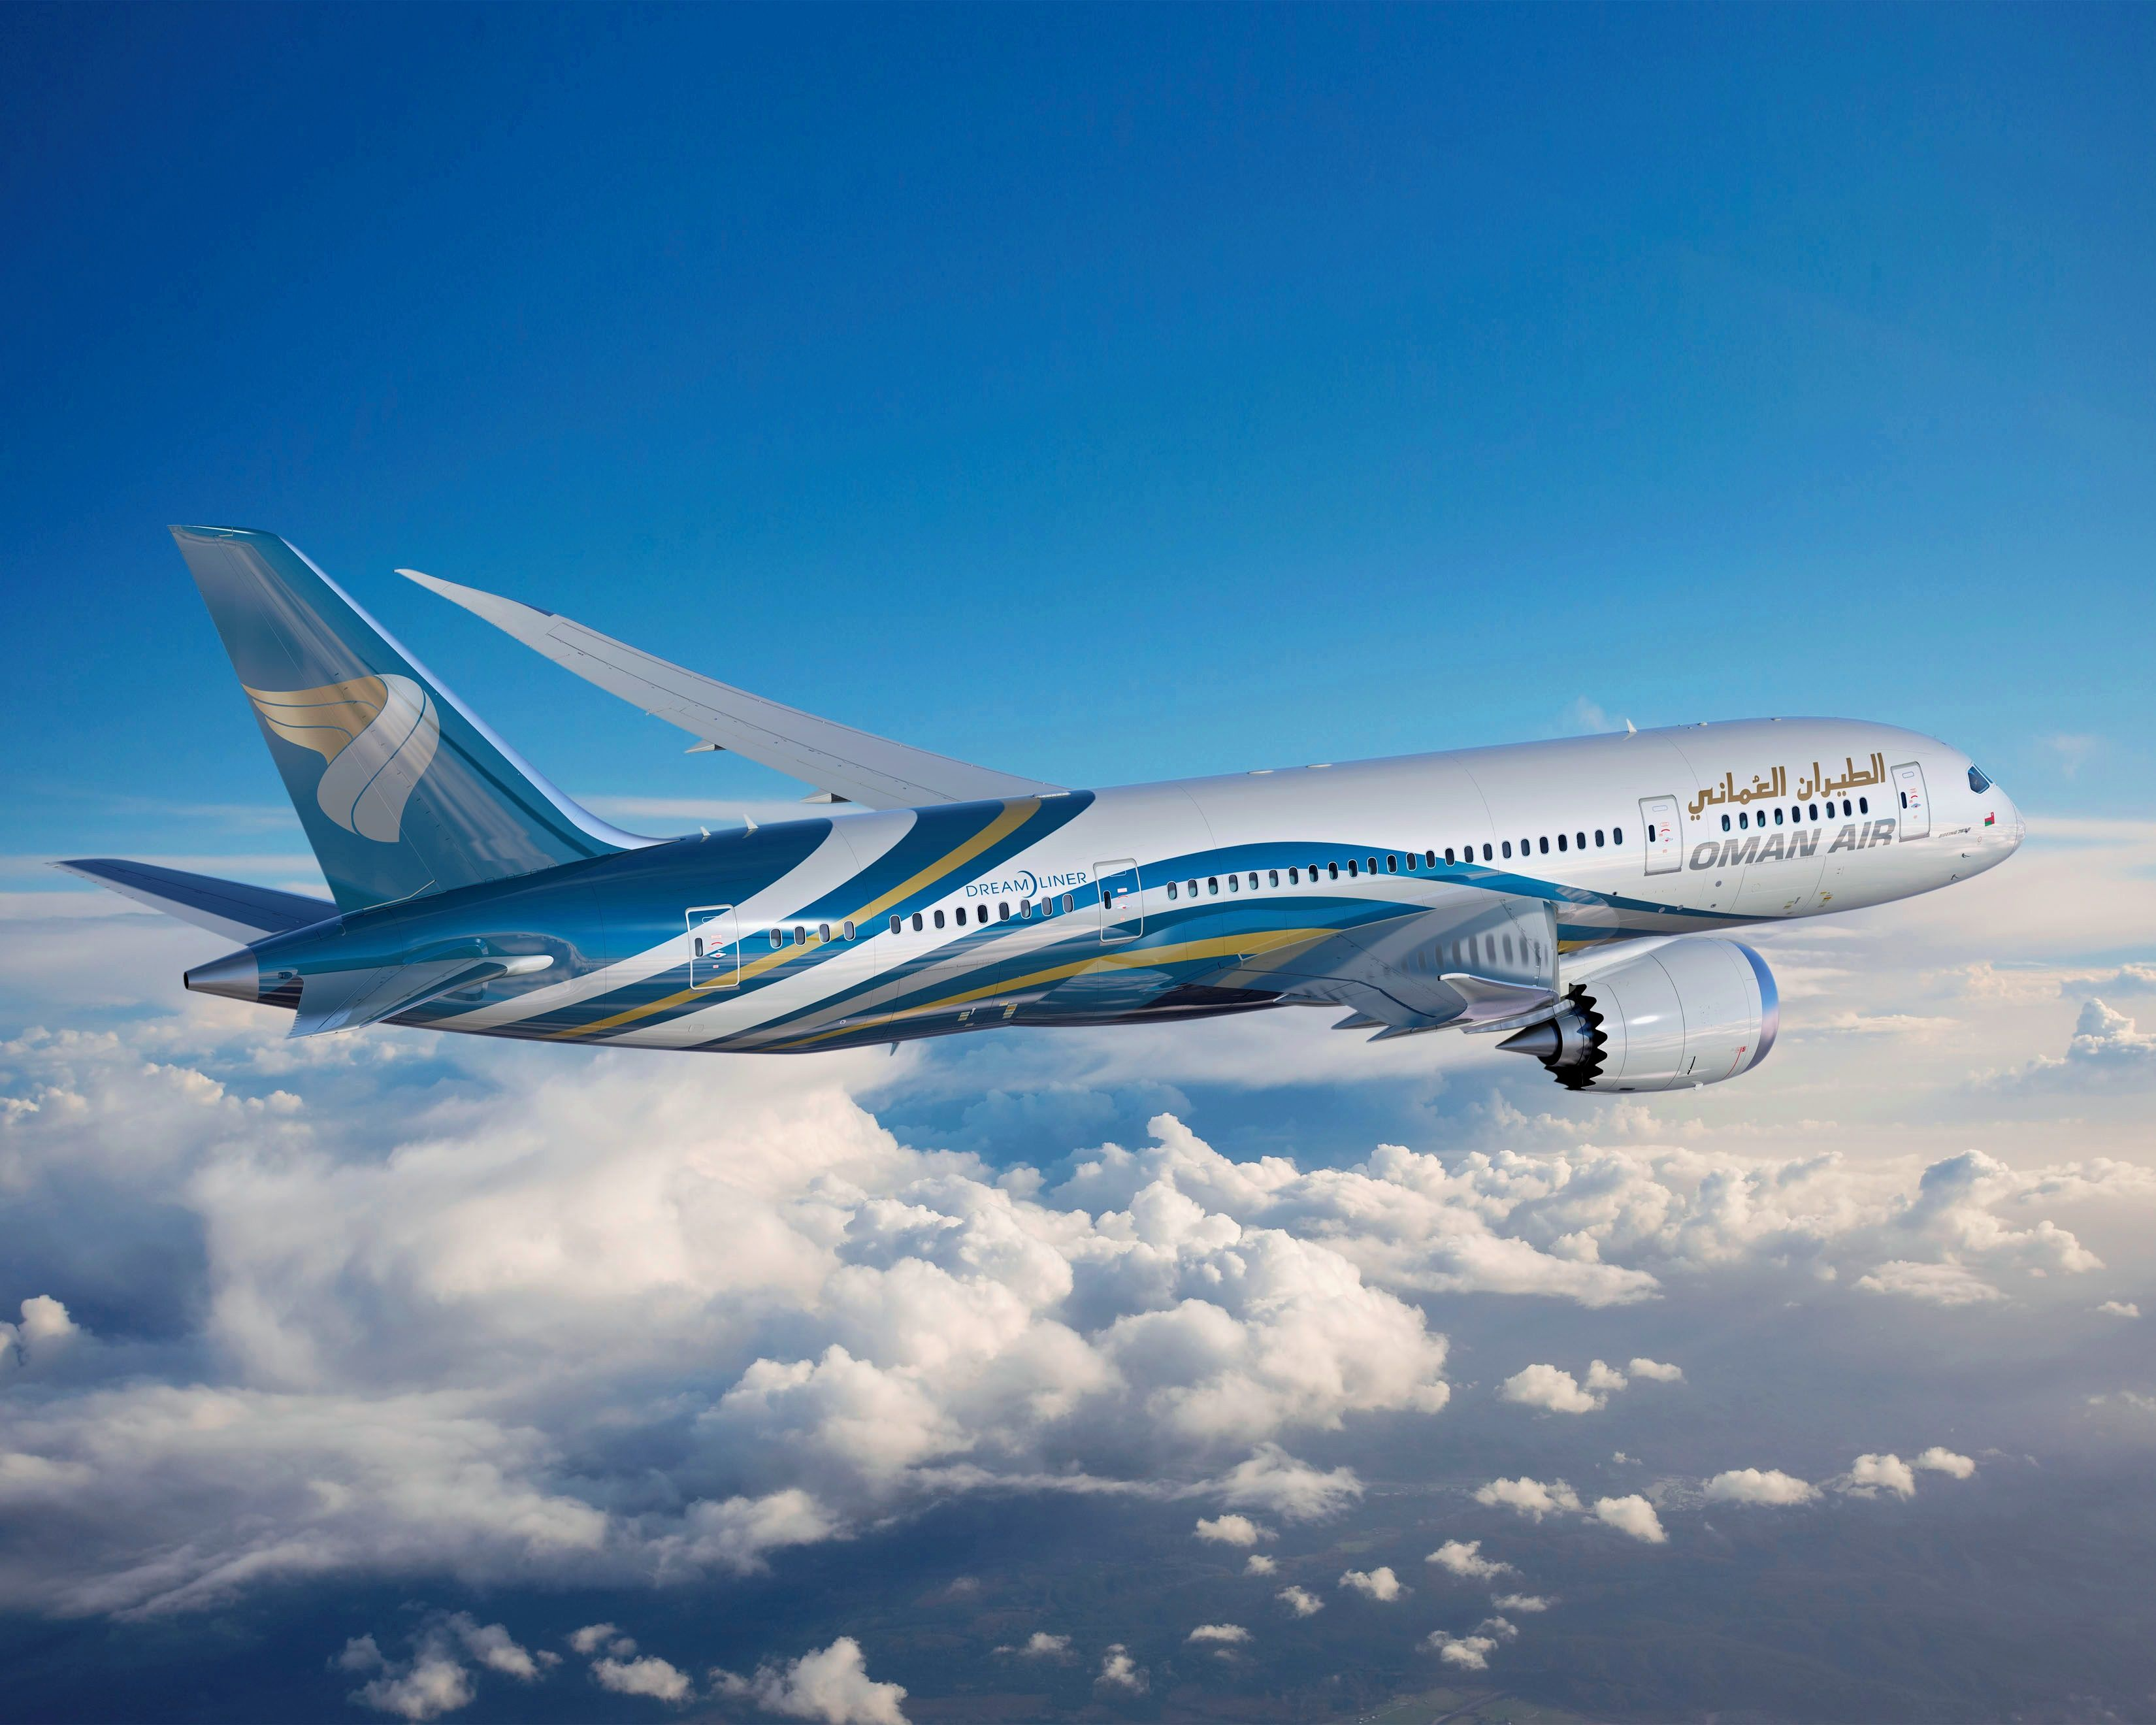 Oman Air's first 787 Dreamliner. Love their livery!